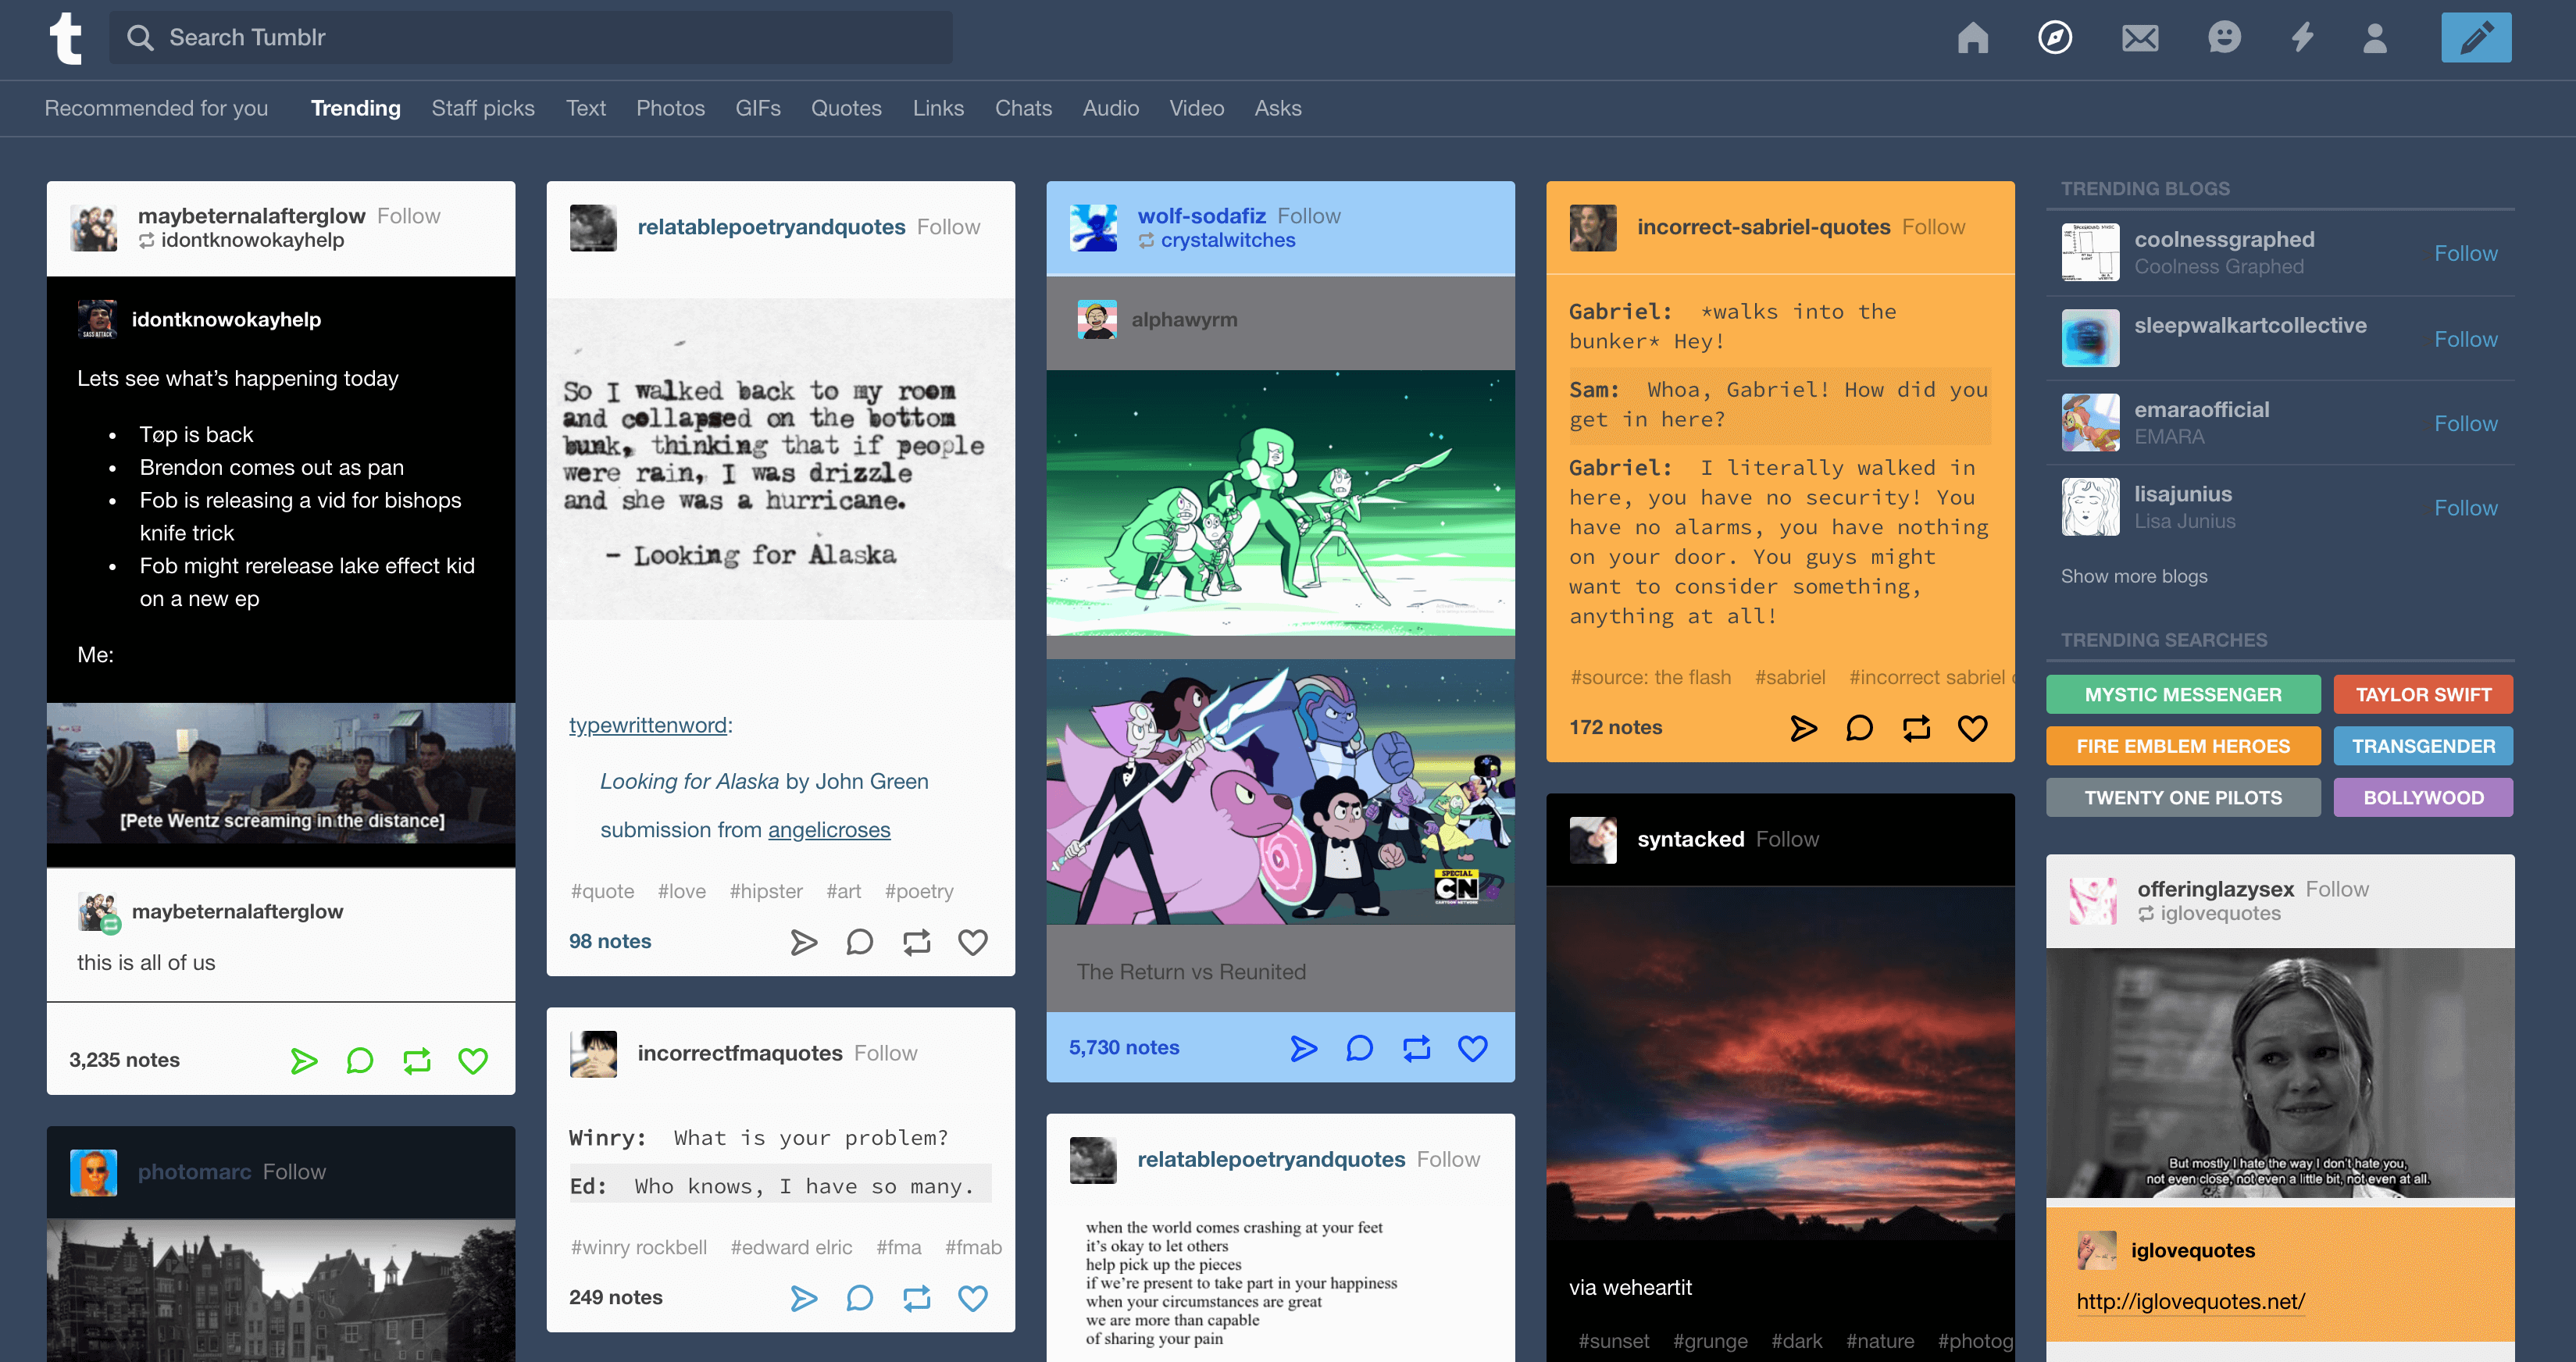 The Trending posts in Tumblr.